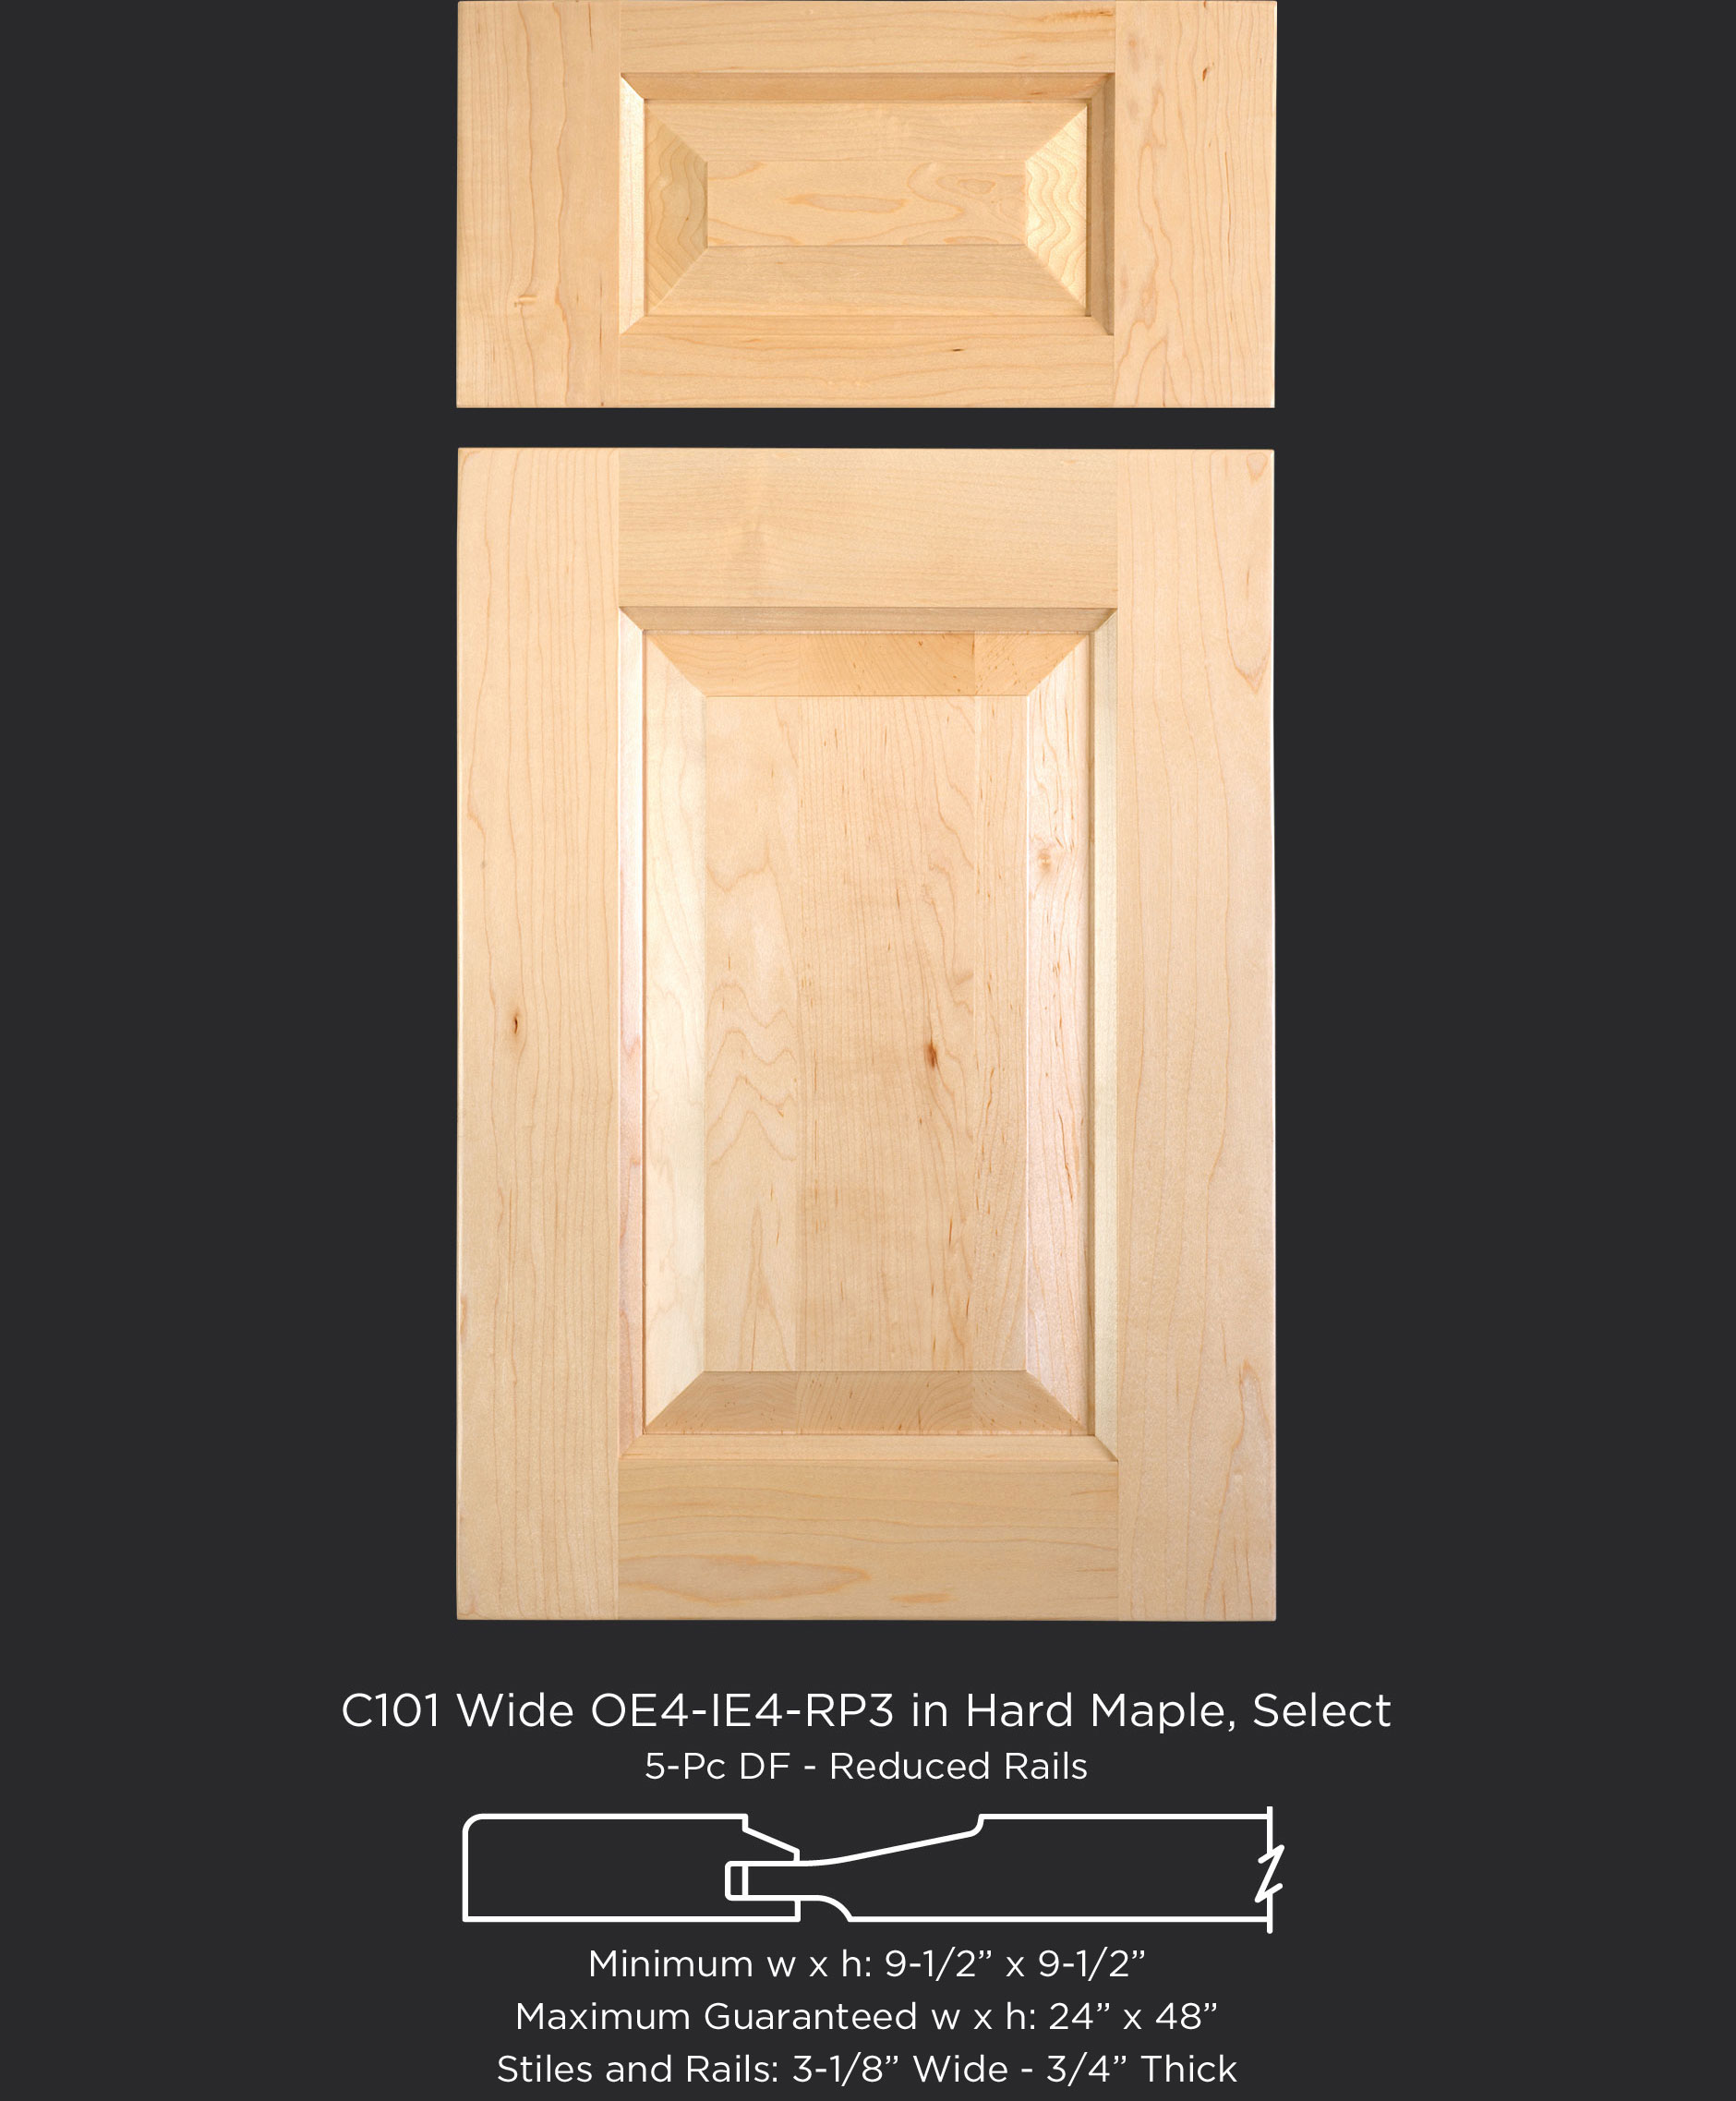 Cope and Stick Cabinet Door C101 Wide OE4-IE4-RP3 Hard Maple, Select and 5-piece drawer front with reduced rails